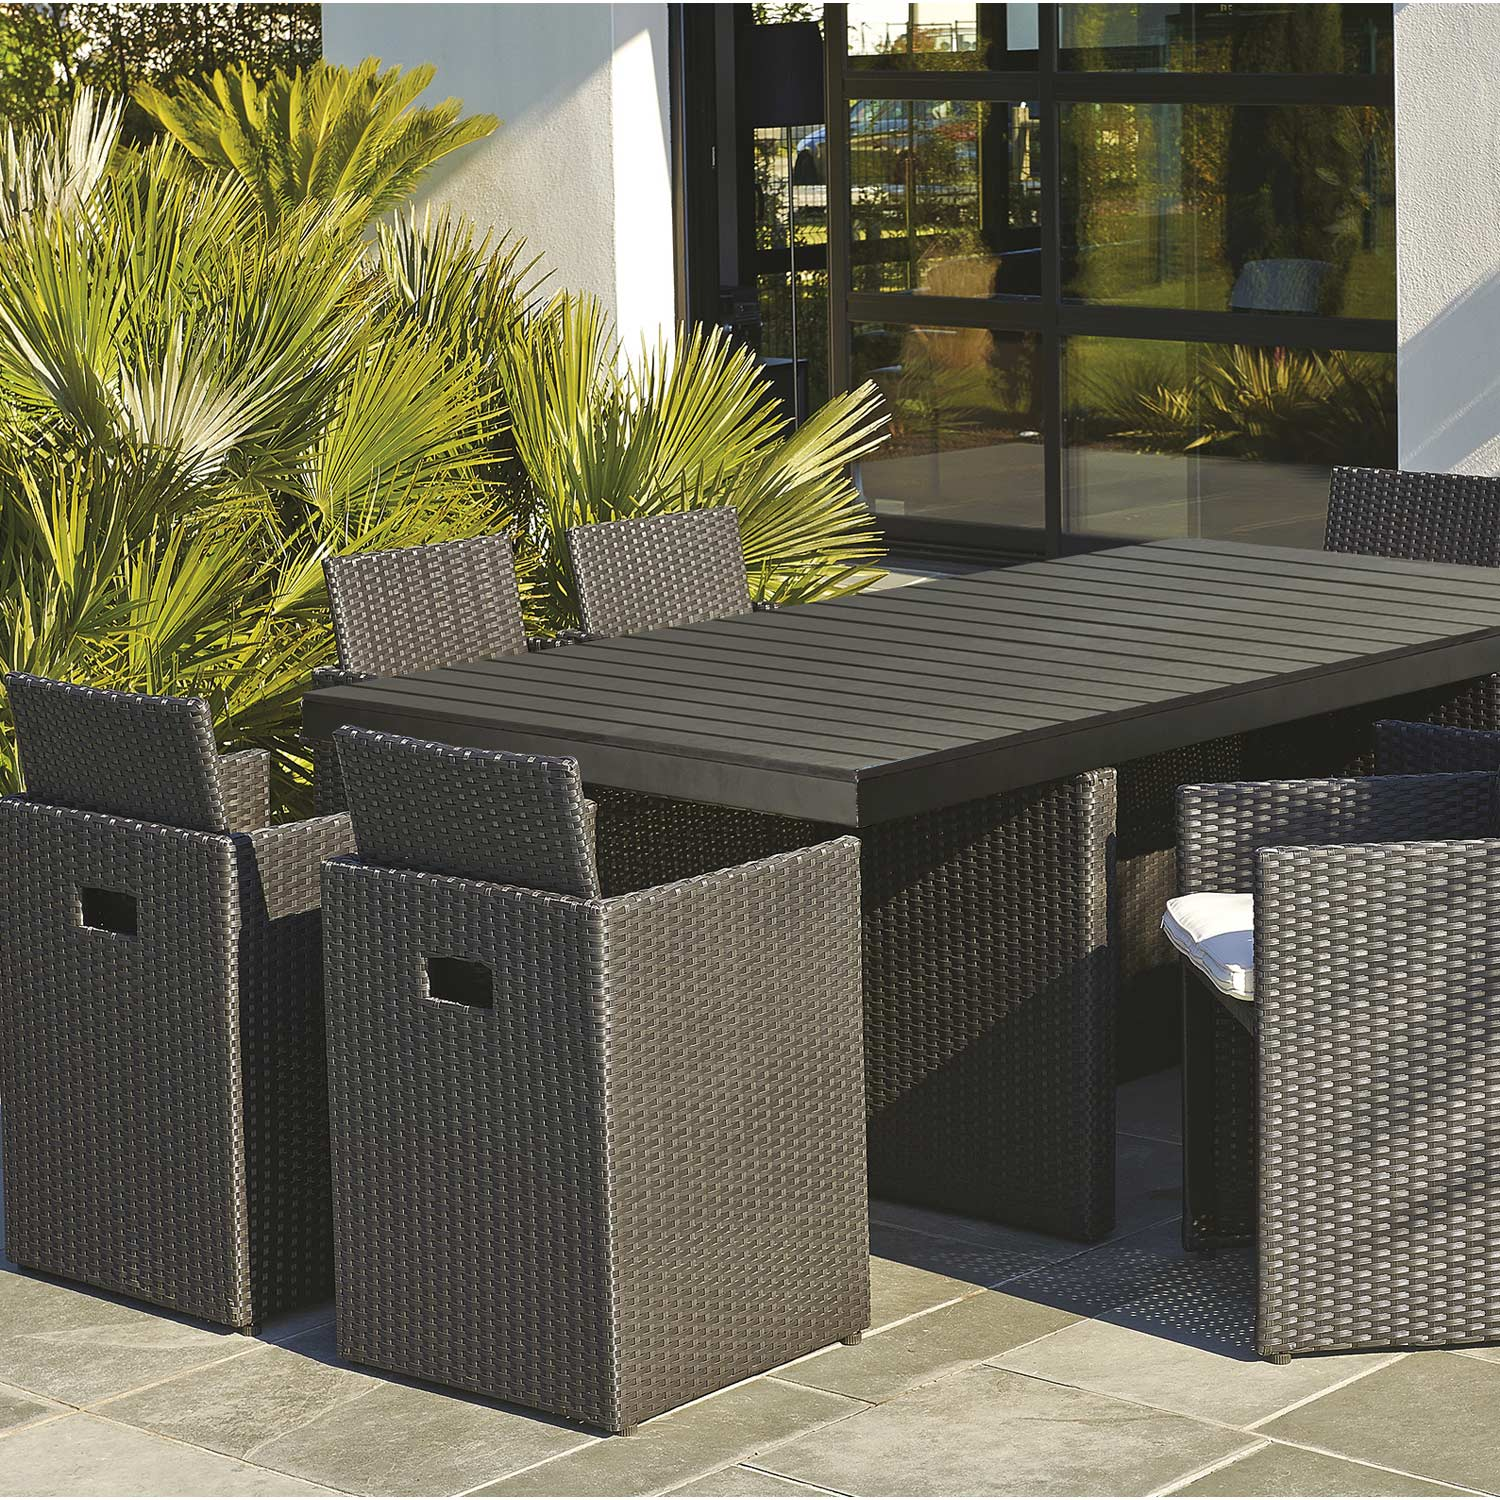 Salon de jardin encastrable r sine tress e noir 1 table 8 fauteuils leroy merlin - Bache salon de jardin ...